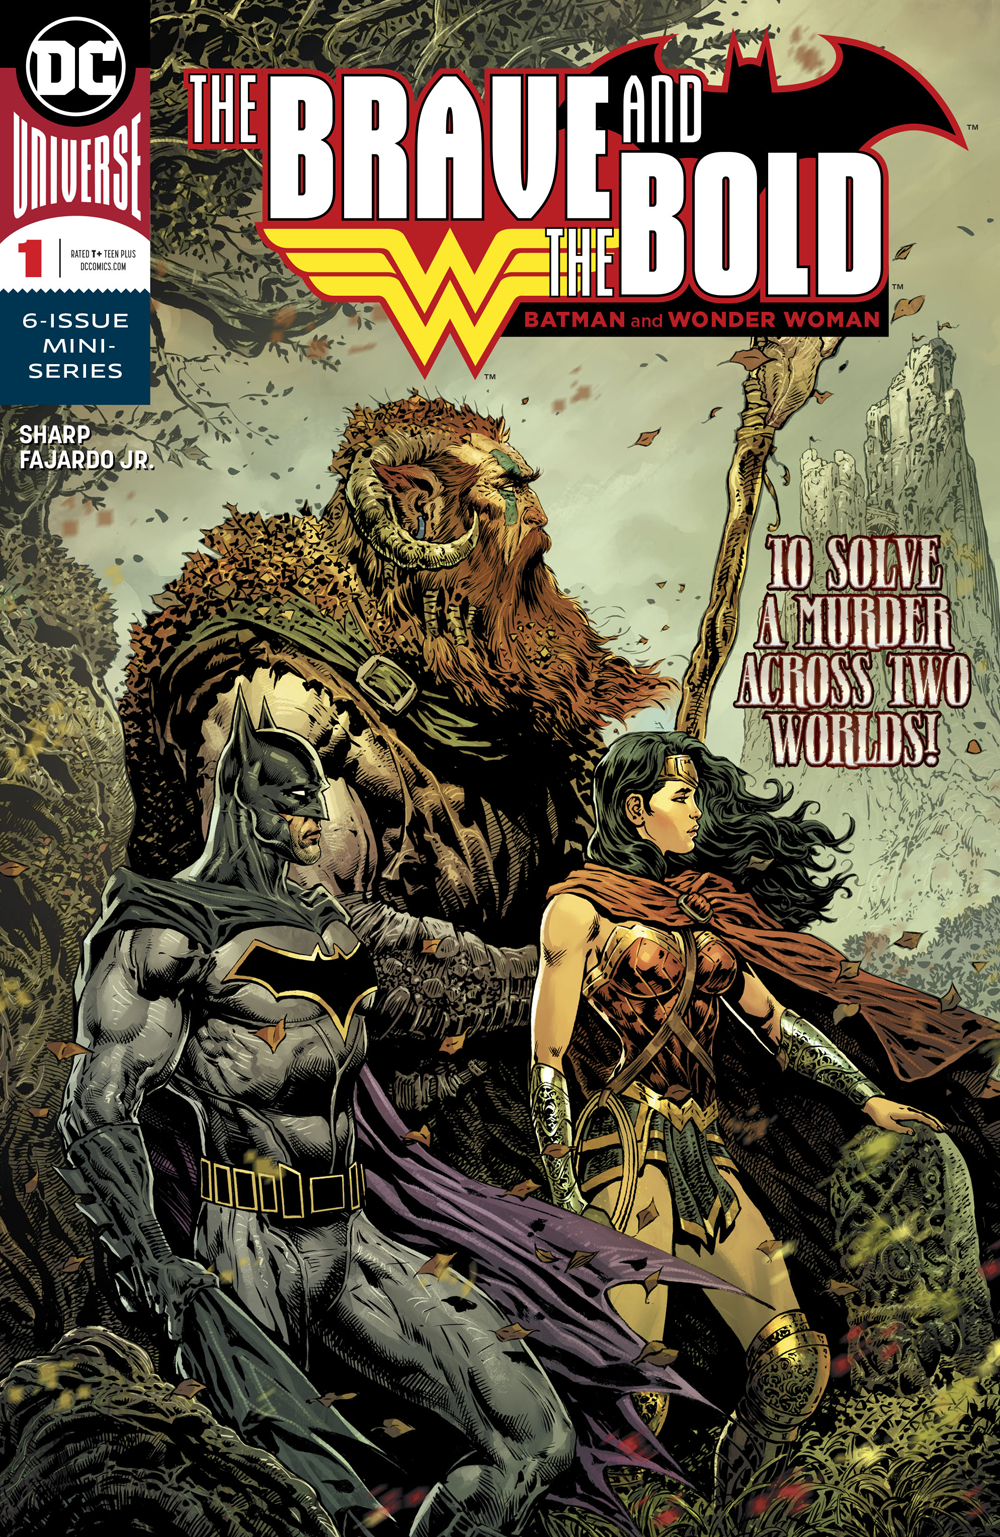 BRAVE & THE BOLD BATMAN & WONDER WOMAN #1 (OF 6)